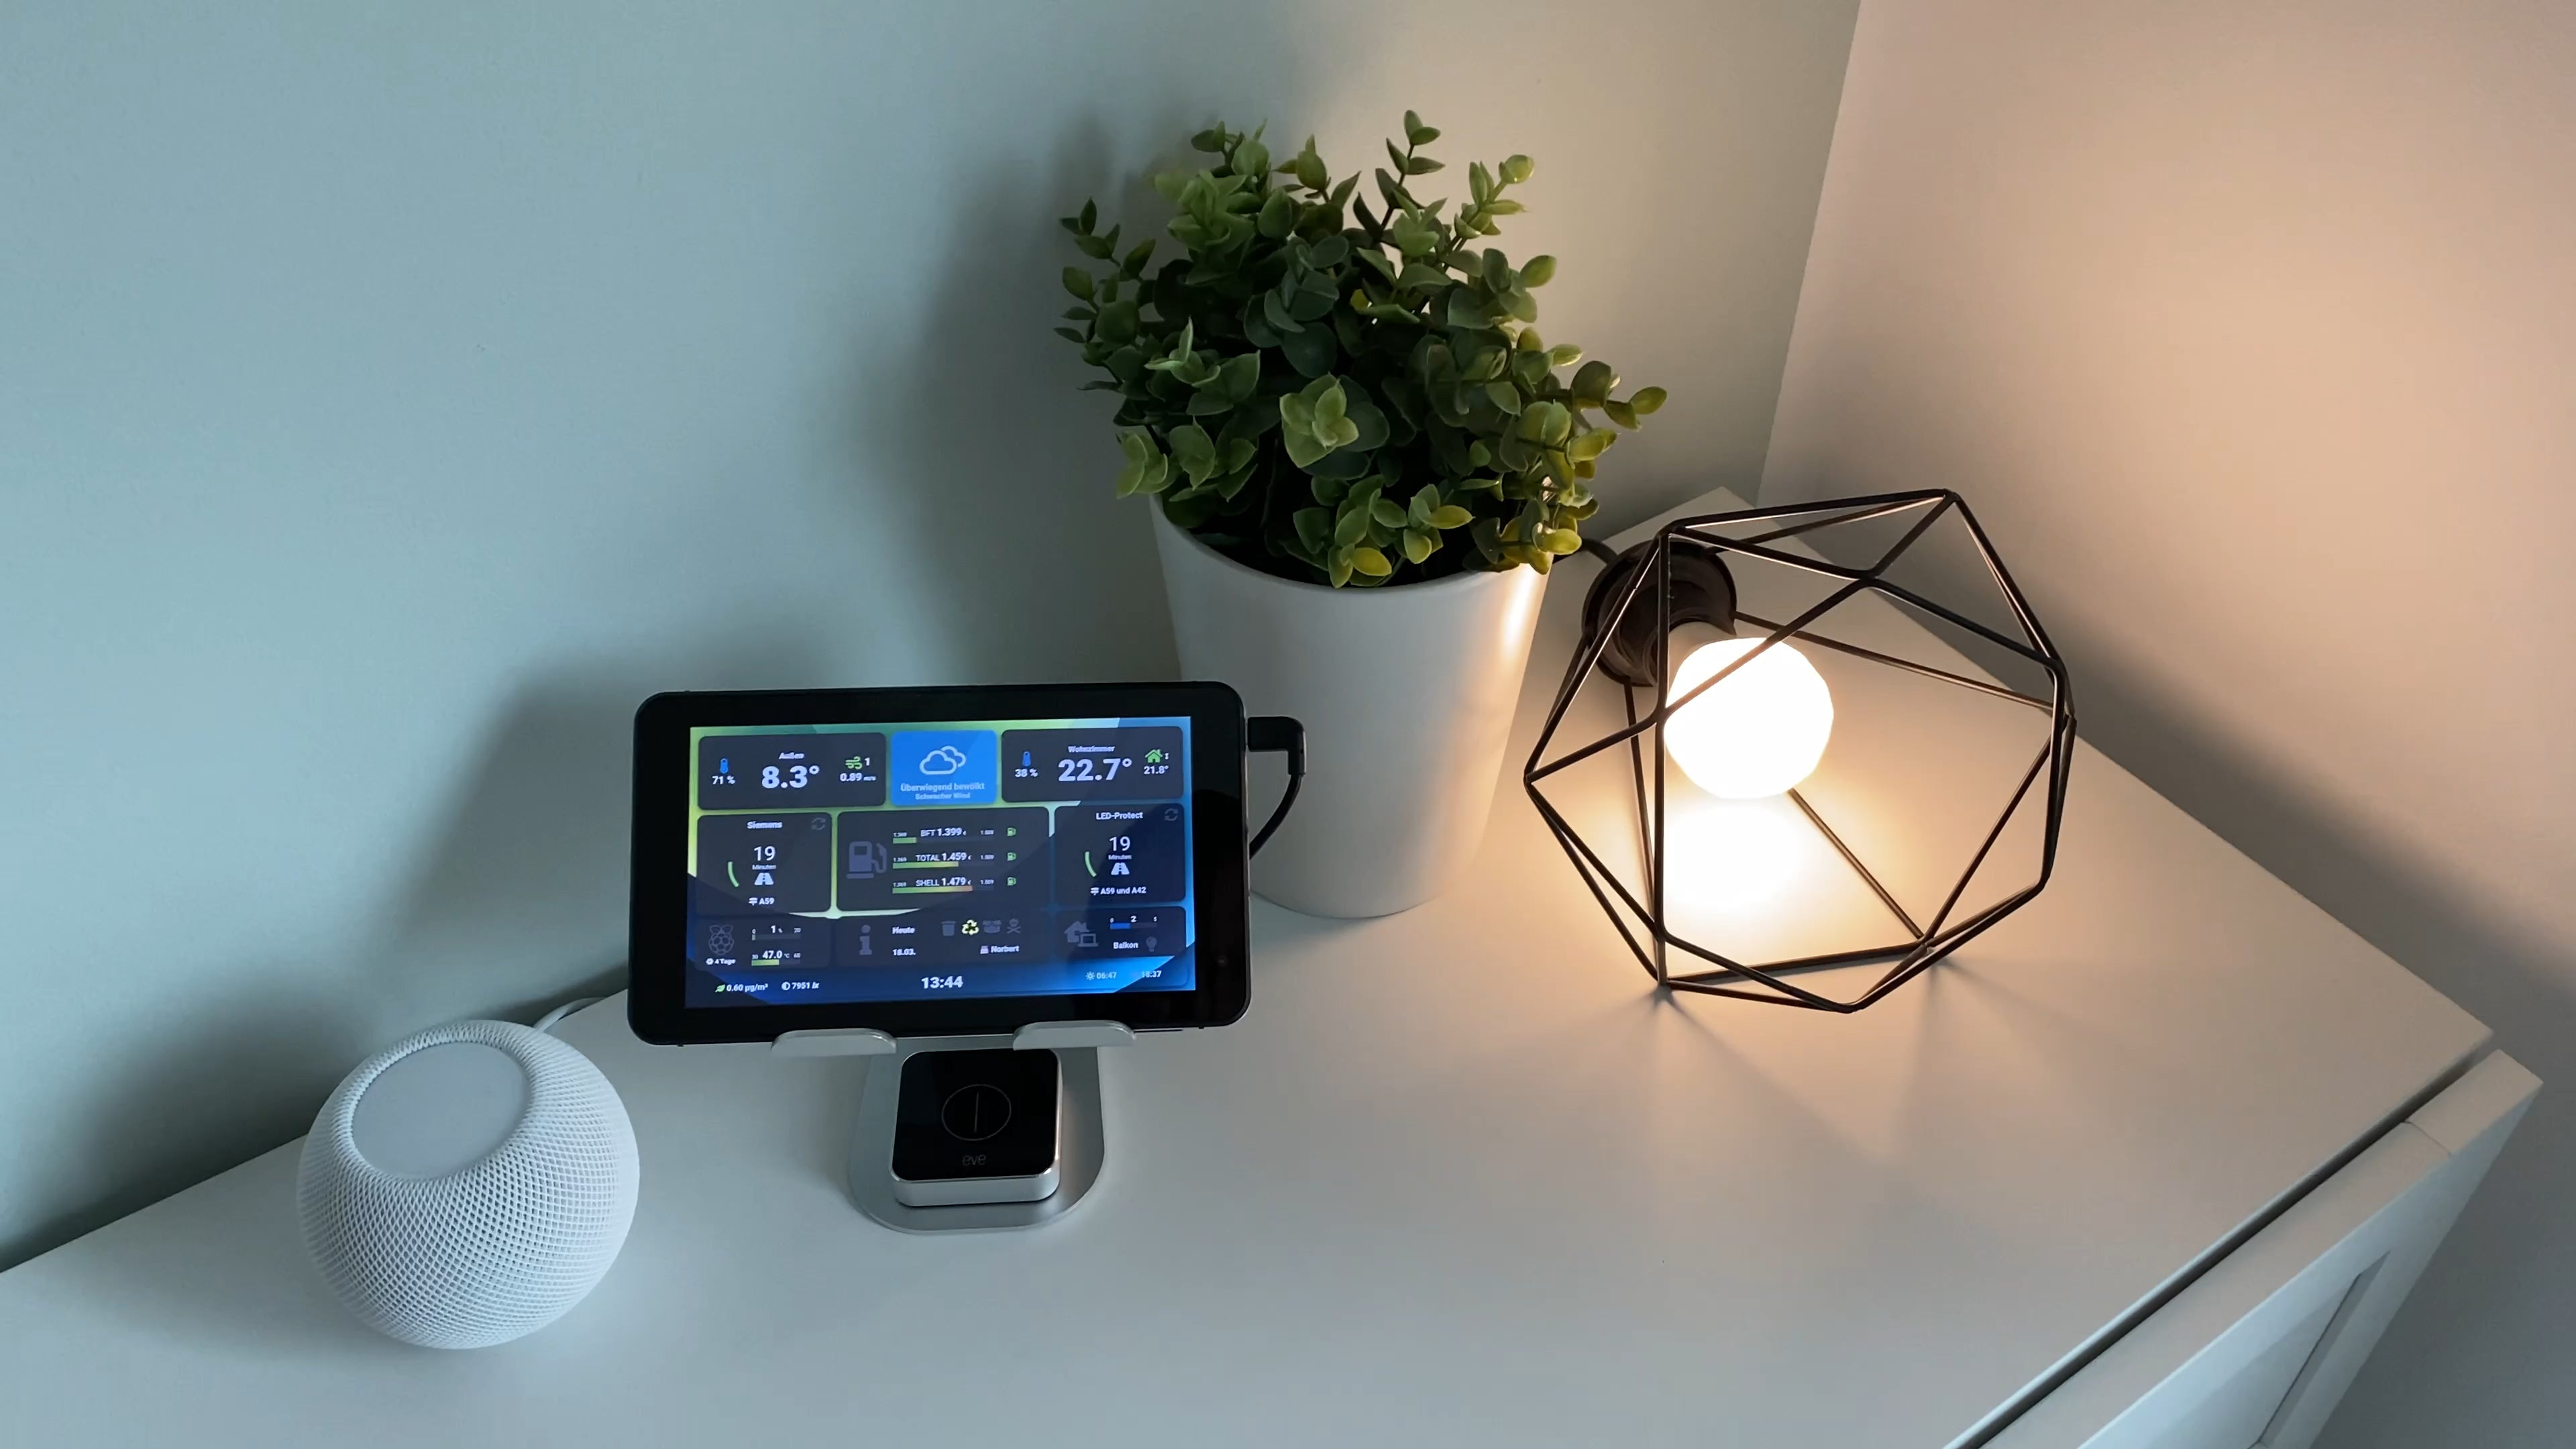 Use the Node RED dashboard old Android tablet to trigger HomeKit